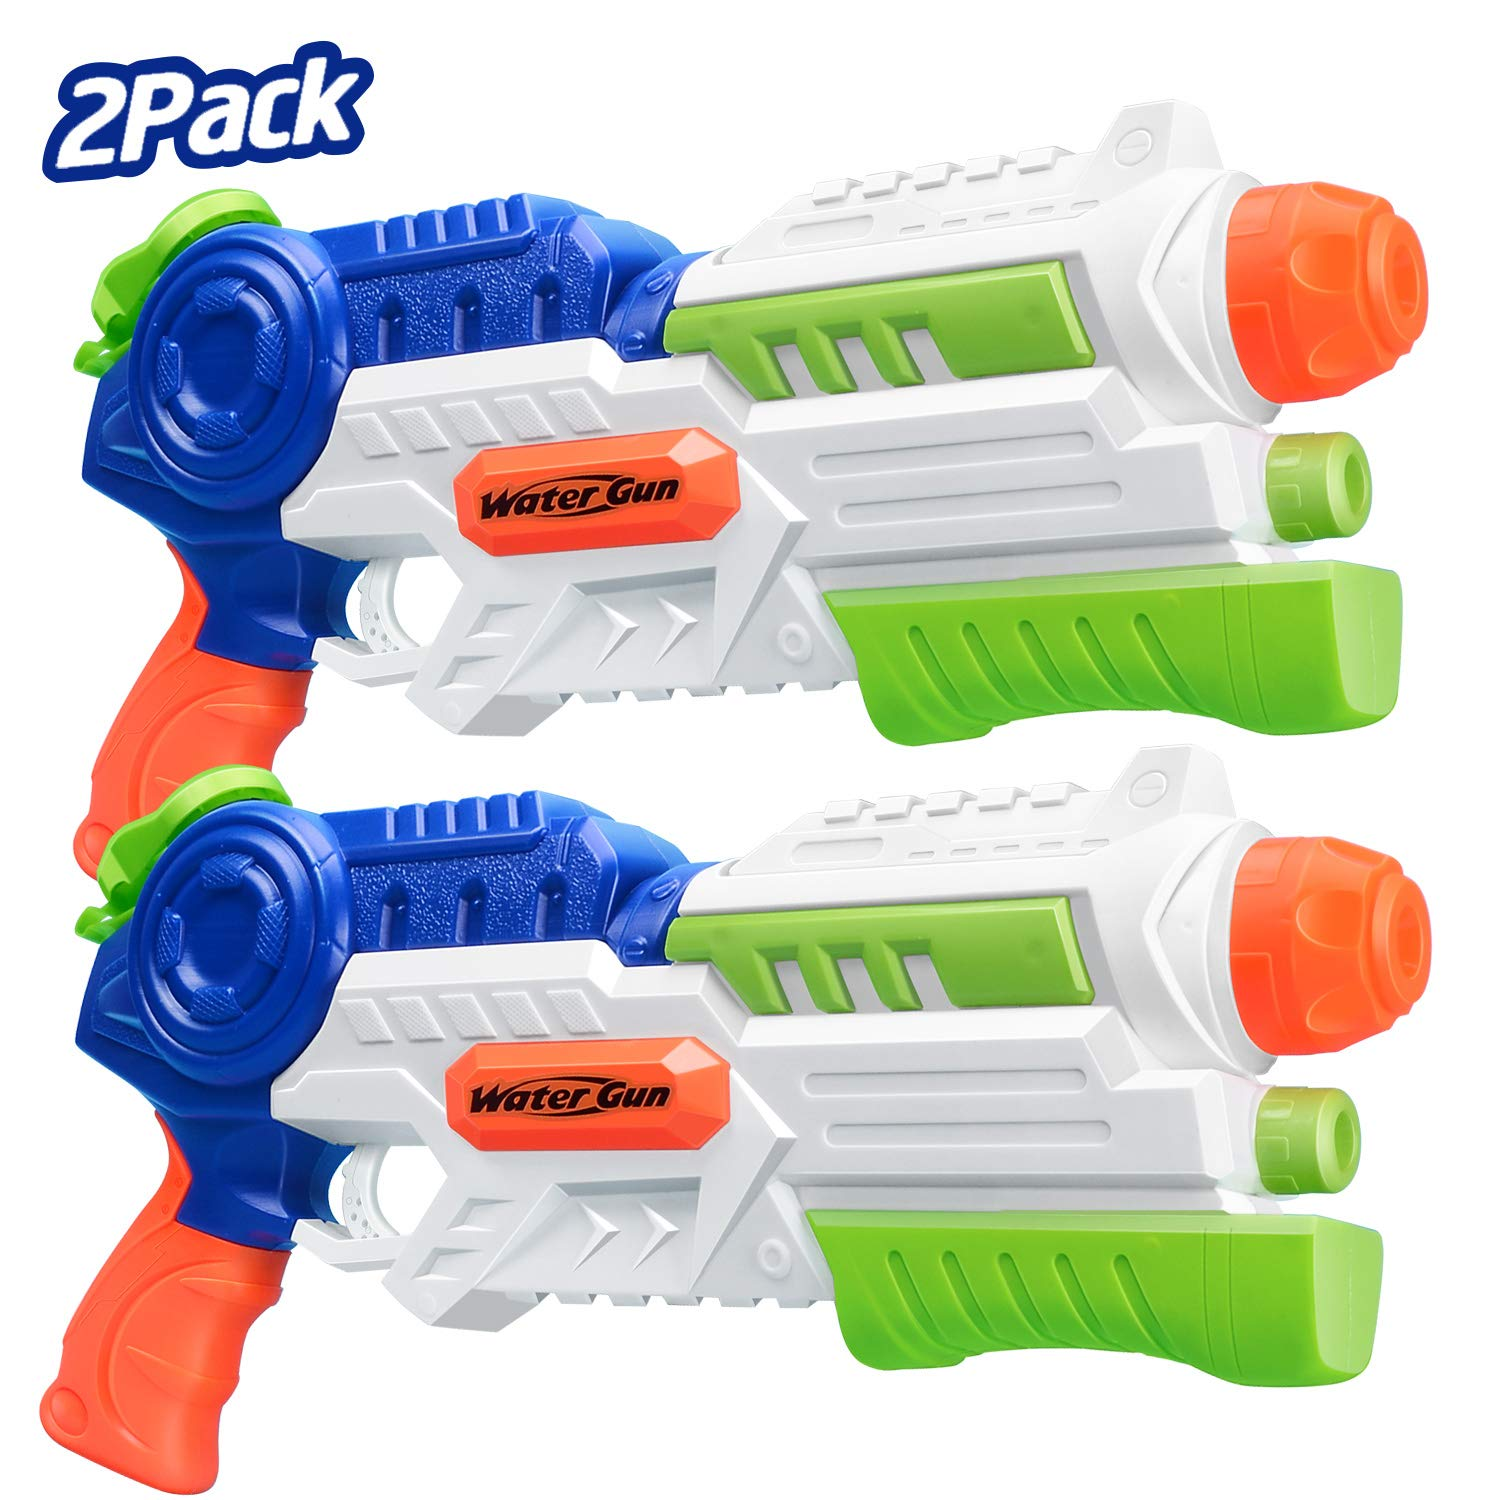 MAGIFIRE Super Water Guns 2 Pack Squirt Guns 1000 CC for Kids Adults Summer Soaker Water Toys Outdoor Beach Sand Party Water Fighting (Blue) by MAGIFIRE